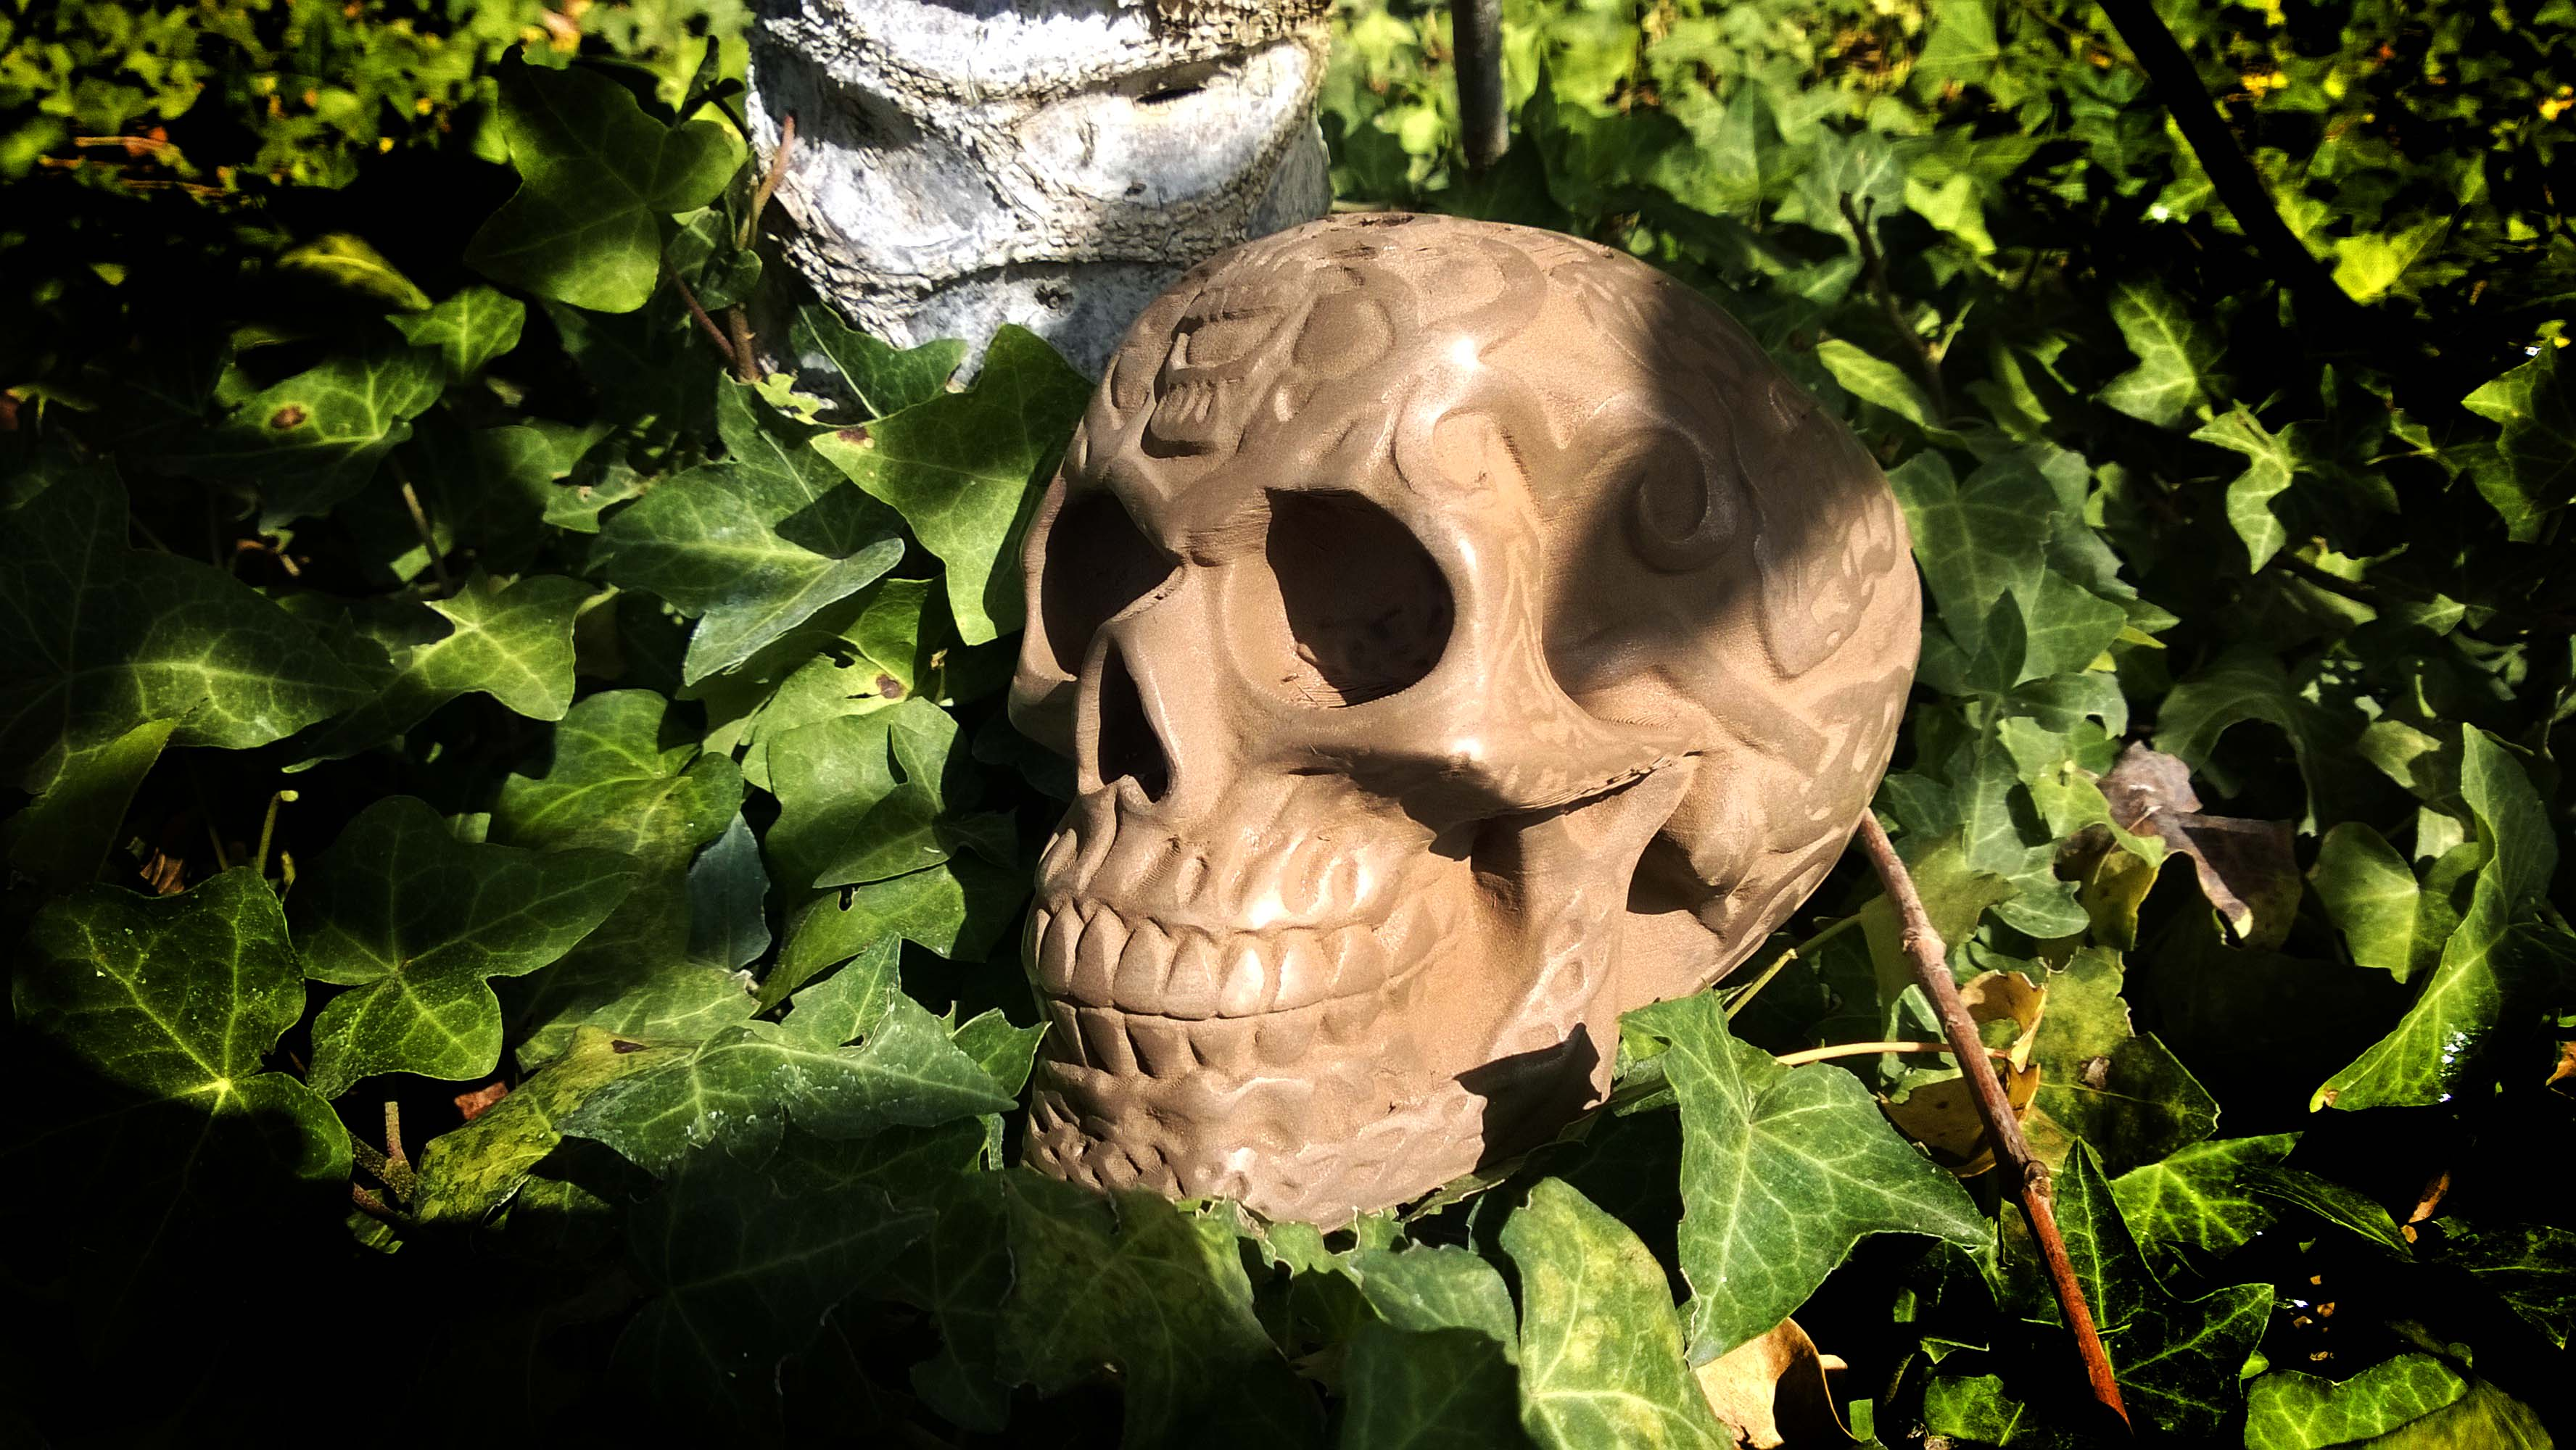 Coolest 3D Printed Thing of the Week: 3D Printed Bronze Skull